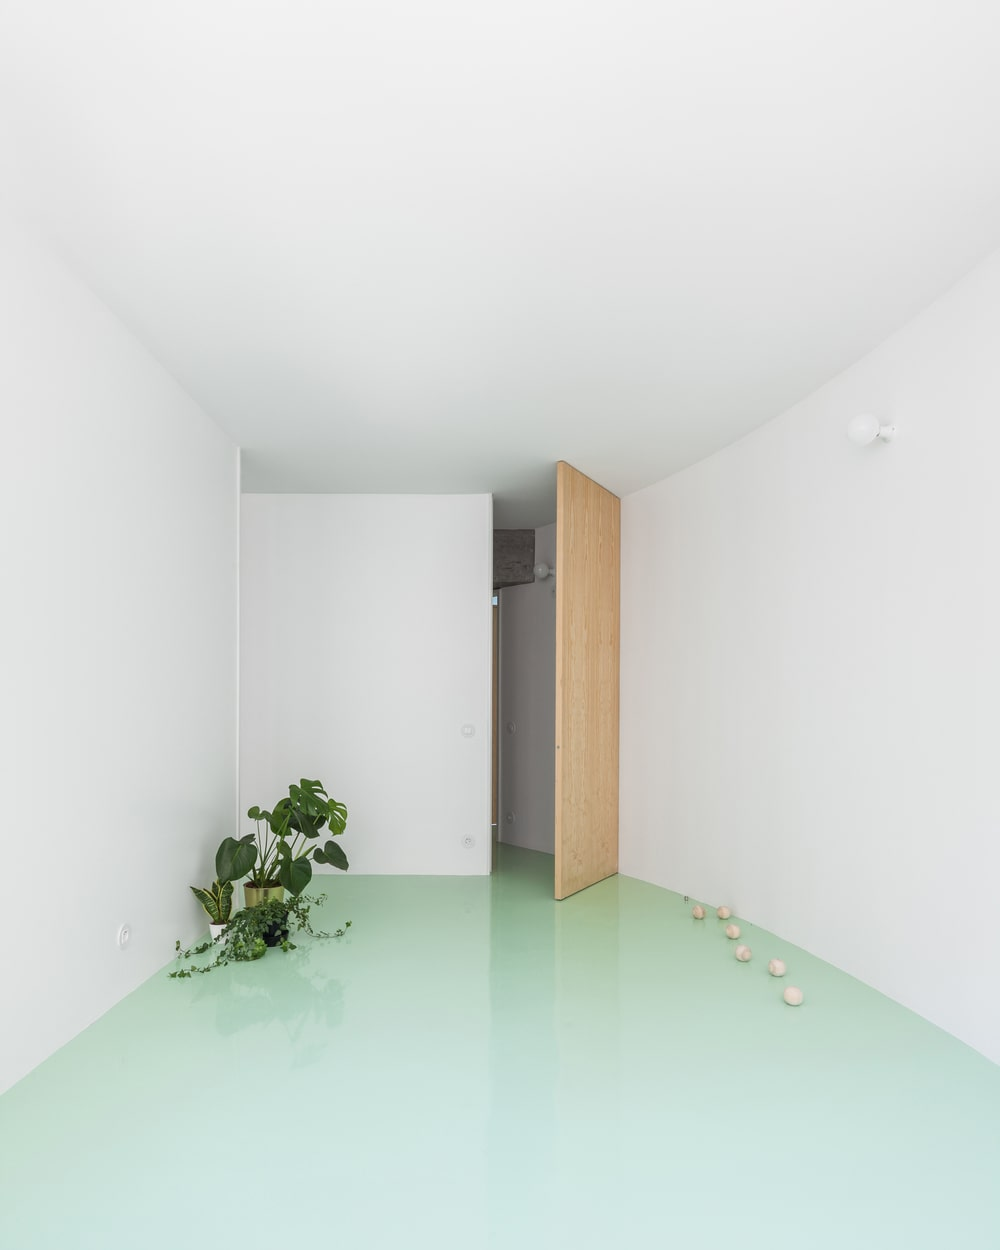 The wooden door of this room stands out against the mint green floor and bright walls.